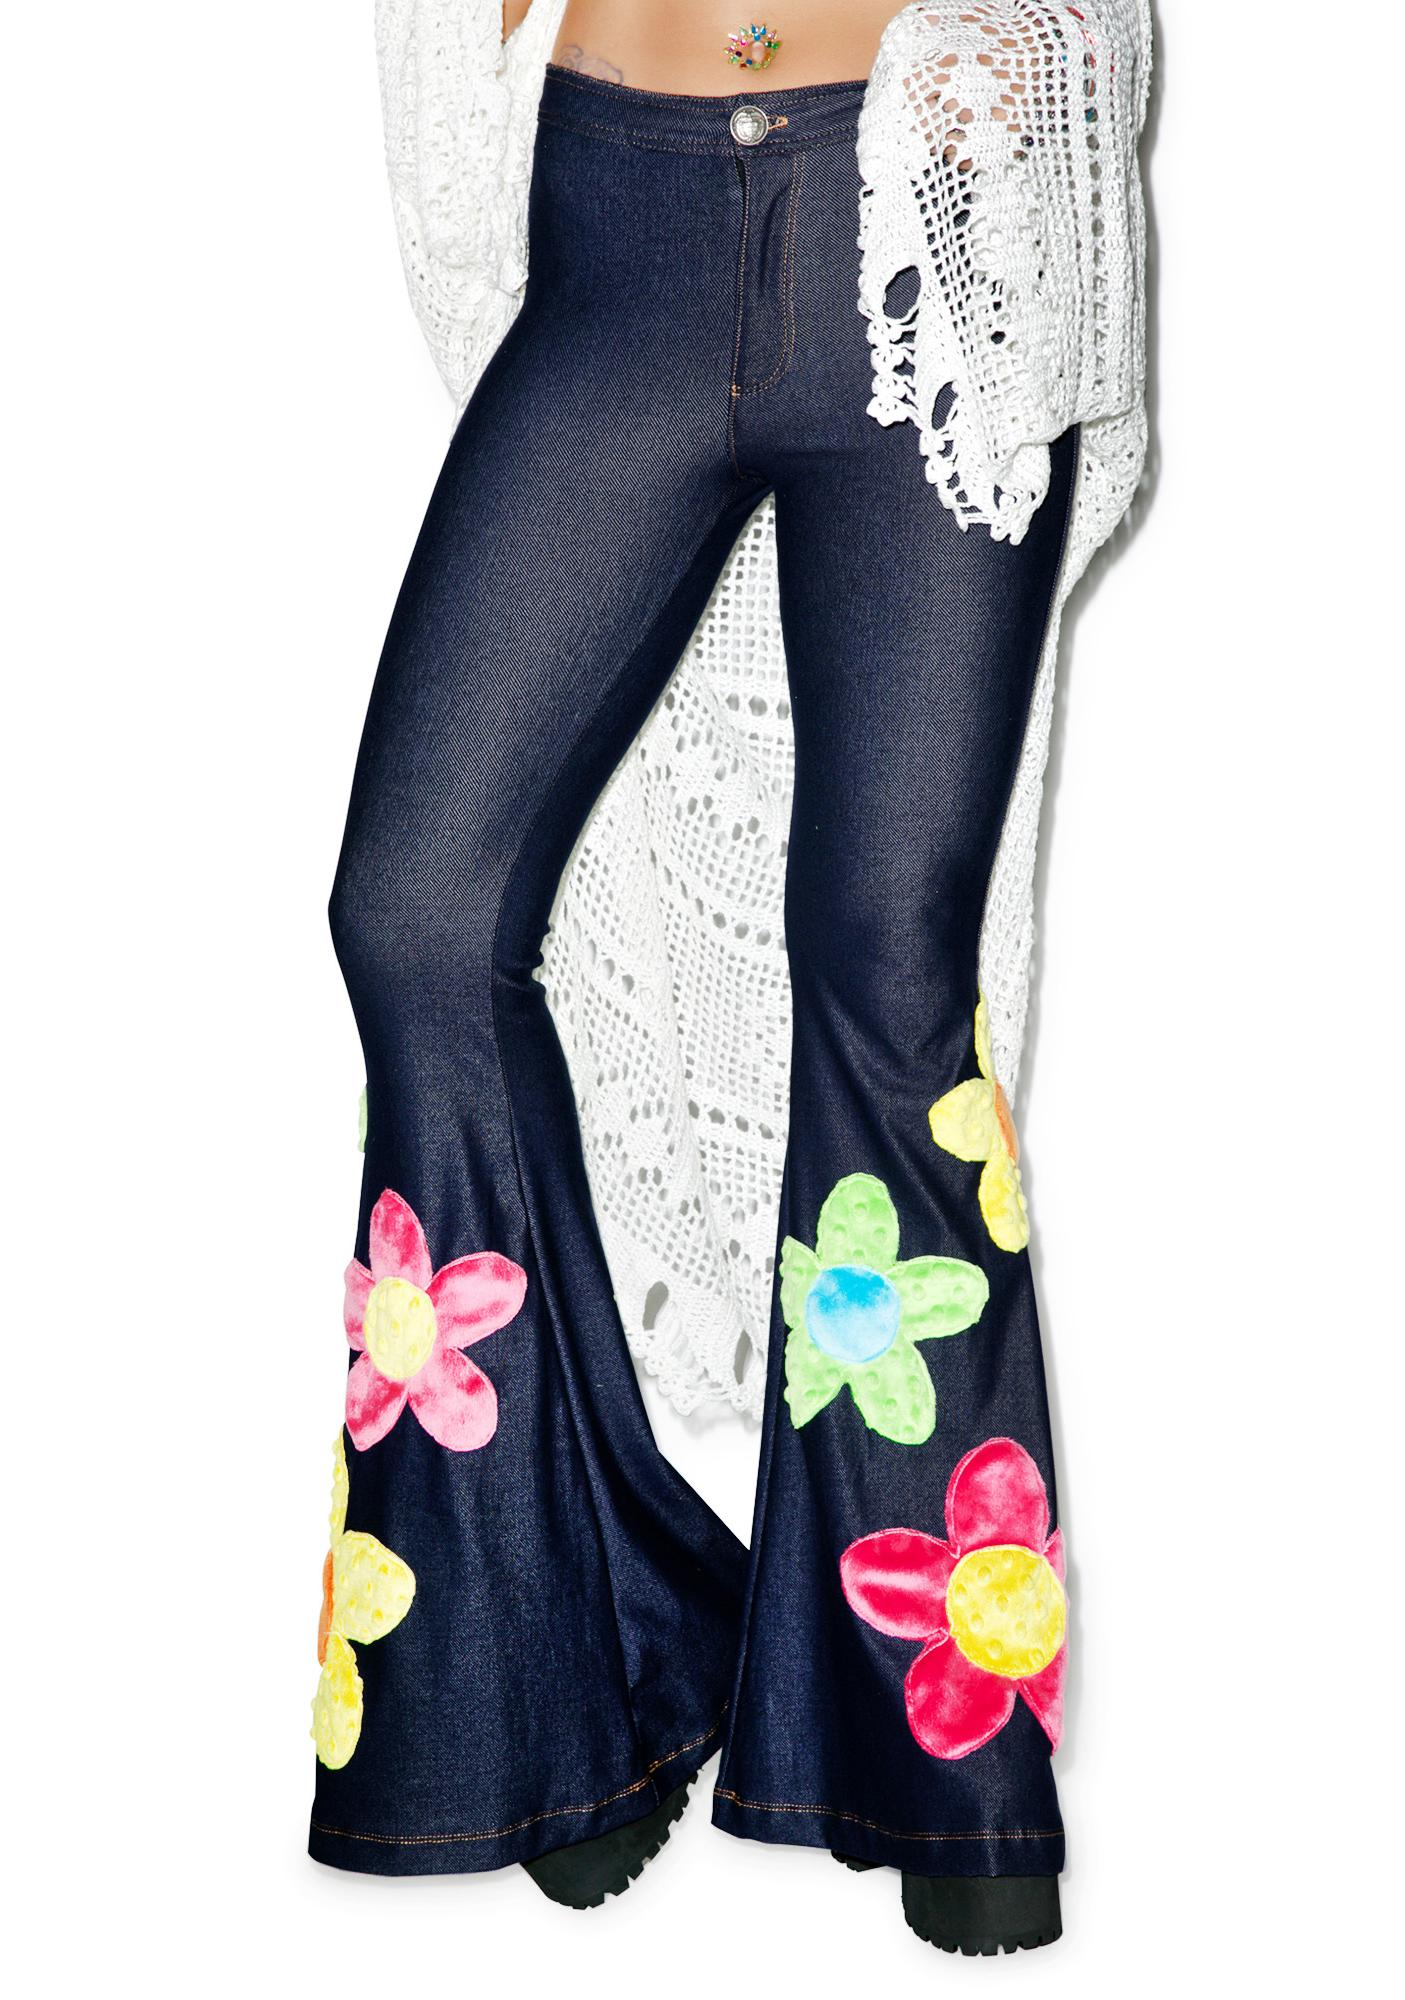 J Valentine Flower Power Bell Bottoms